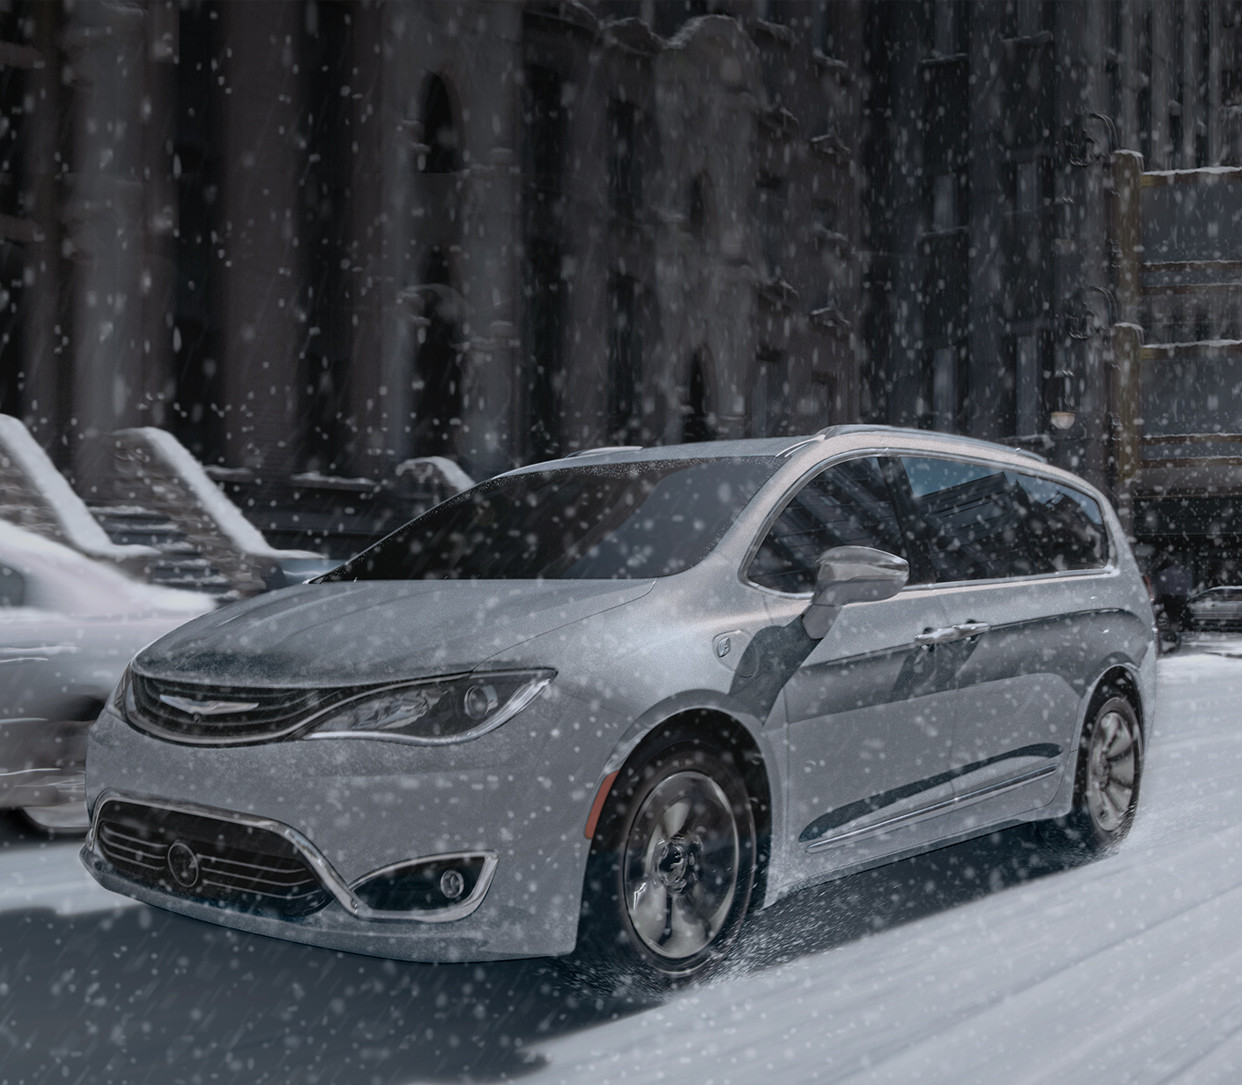 2019 Chrysler Pacifica Hybrid with grey exterior with ocean view